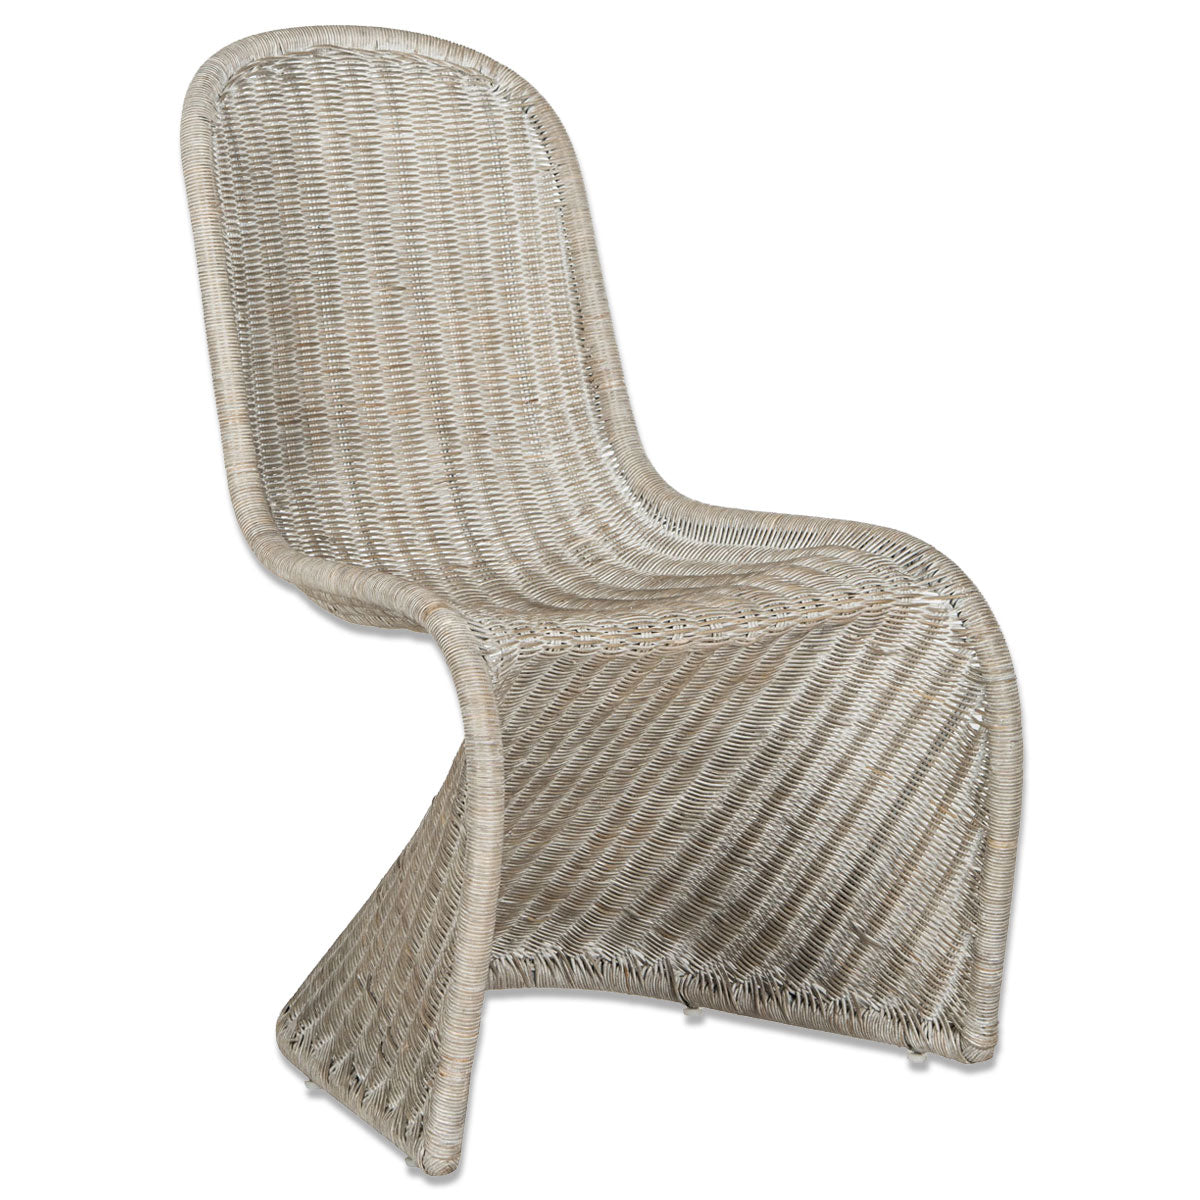 Madeline Wicker Chair Pair - Grey